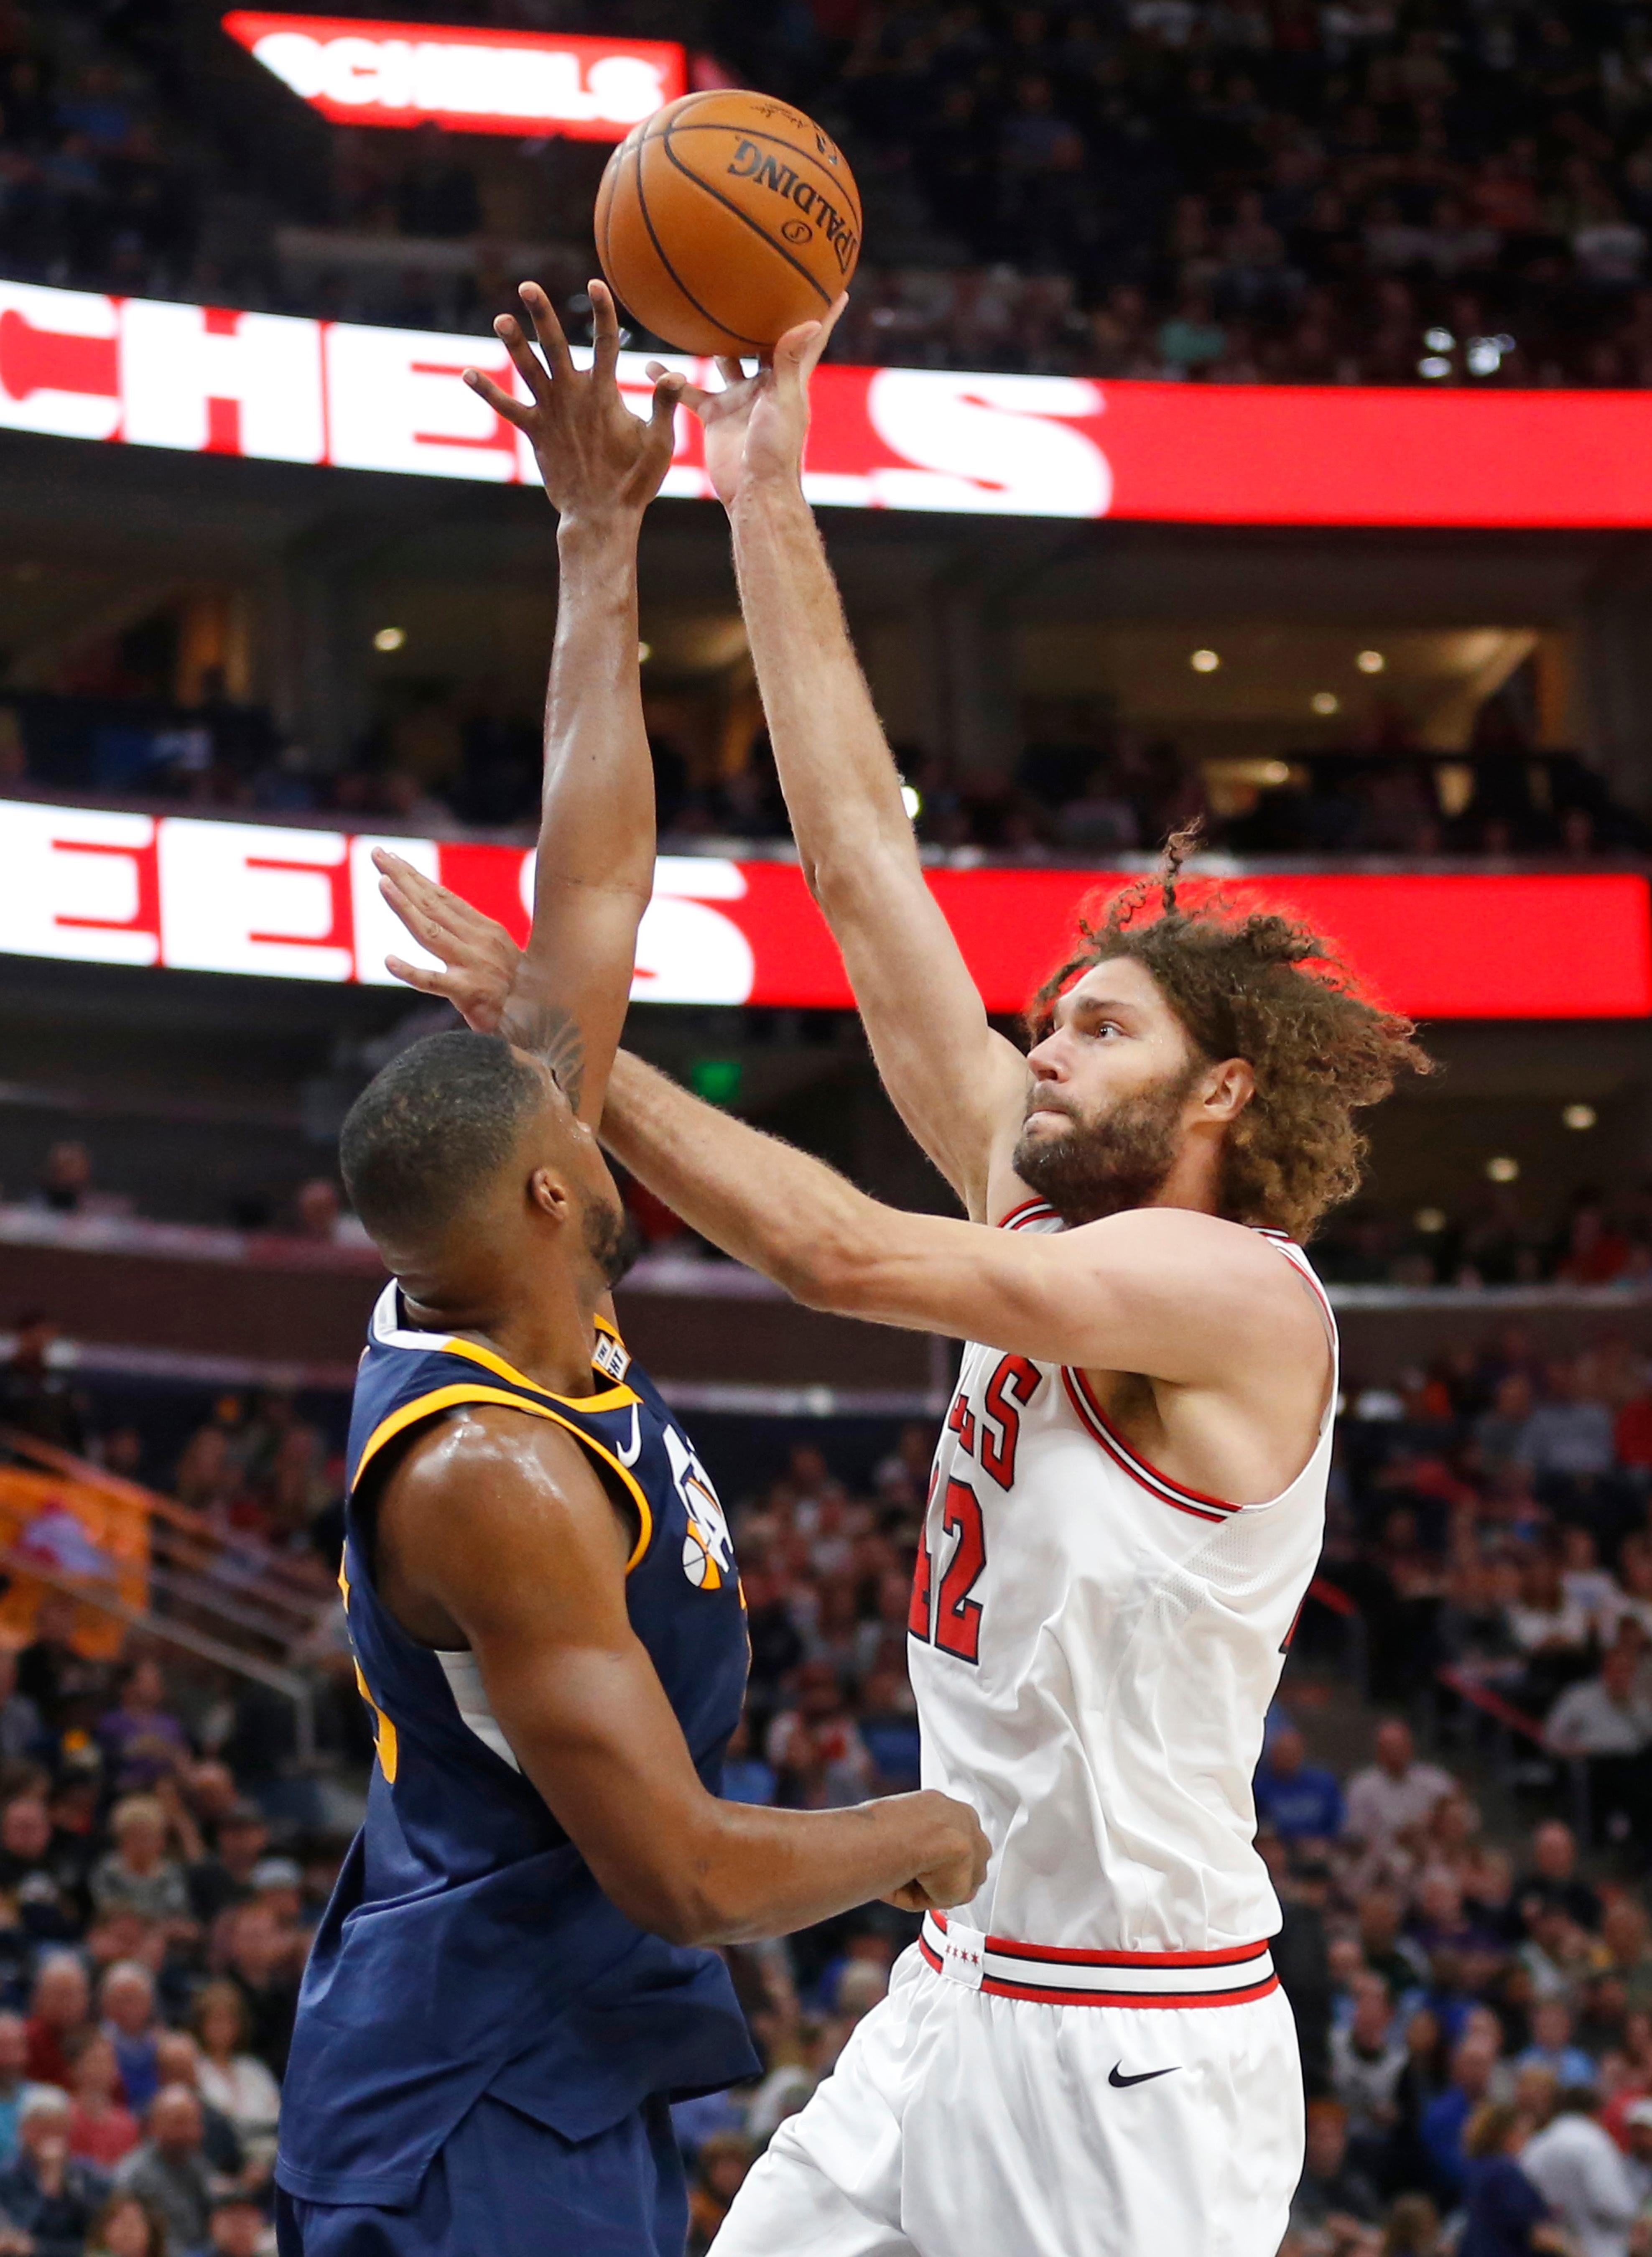 Chicago Bulls center Robin Lopez, right, shoots as Utah Jazz forward Derrick Favors defends during the first half of an NBA basketball game Wednesday, Nov. 22, 2017, in Salt Lake City. (AP Photo/Rick Bowmer)